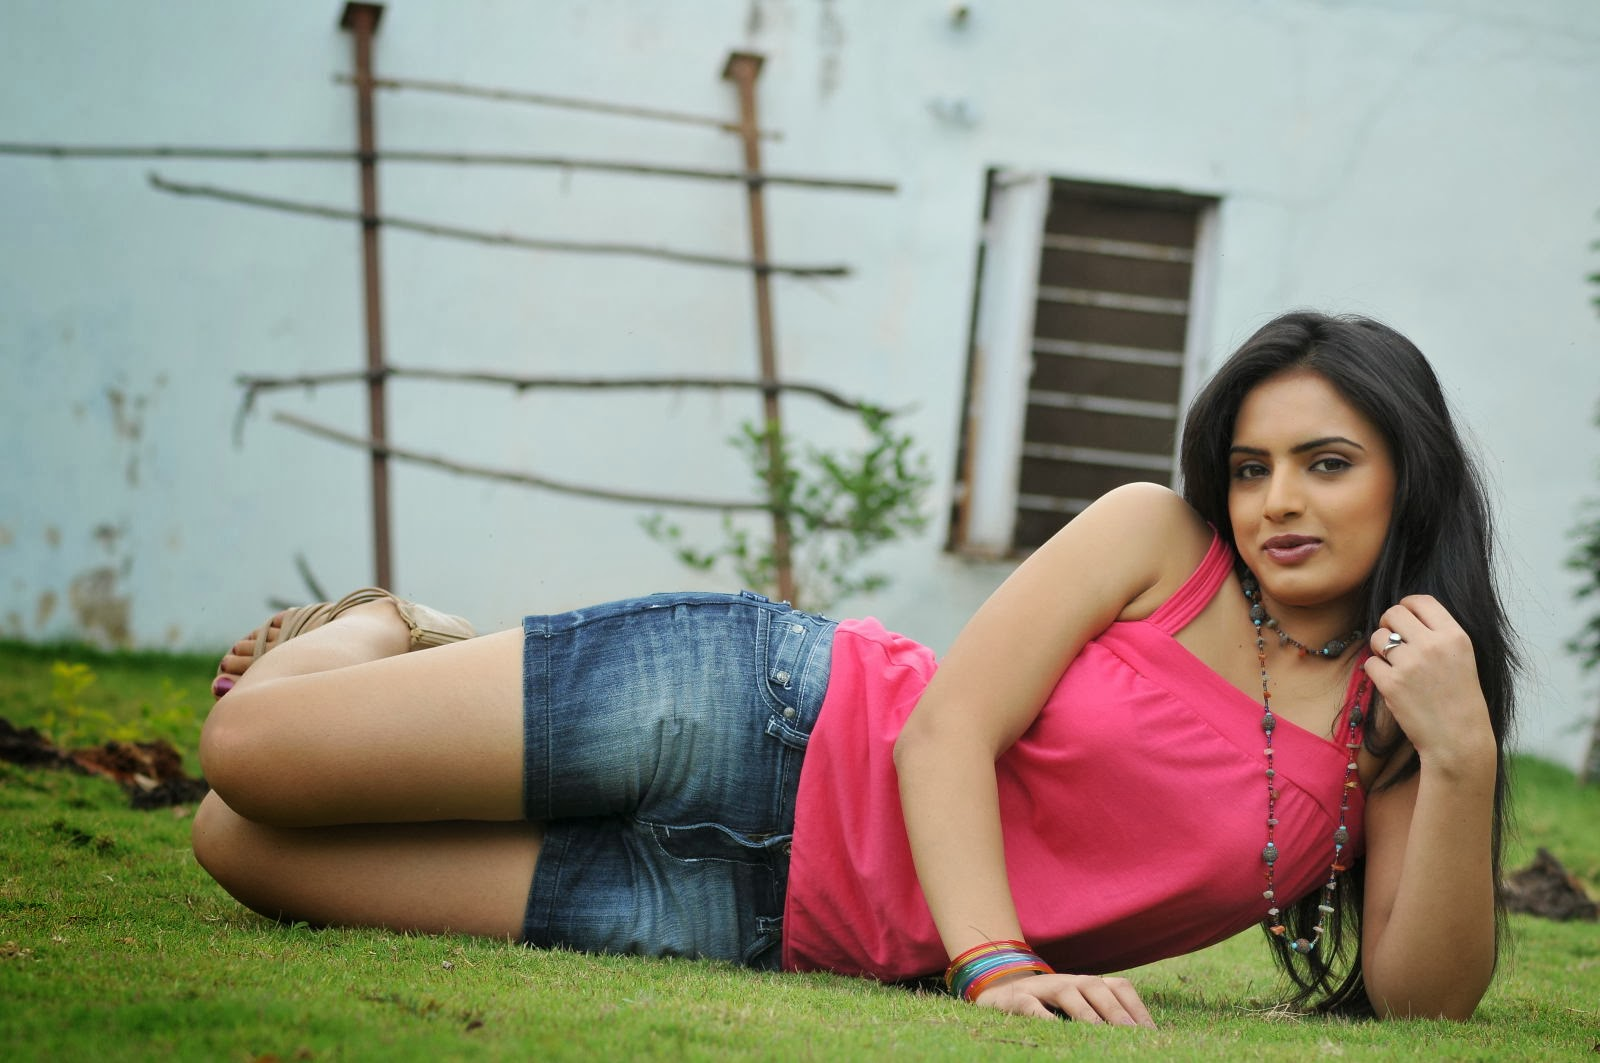 Gorgeous Ritu kaur hot photo gallery in denim shorts